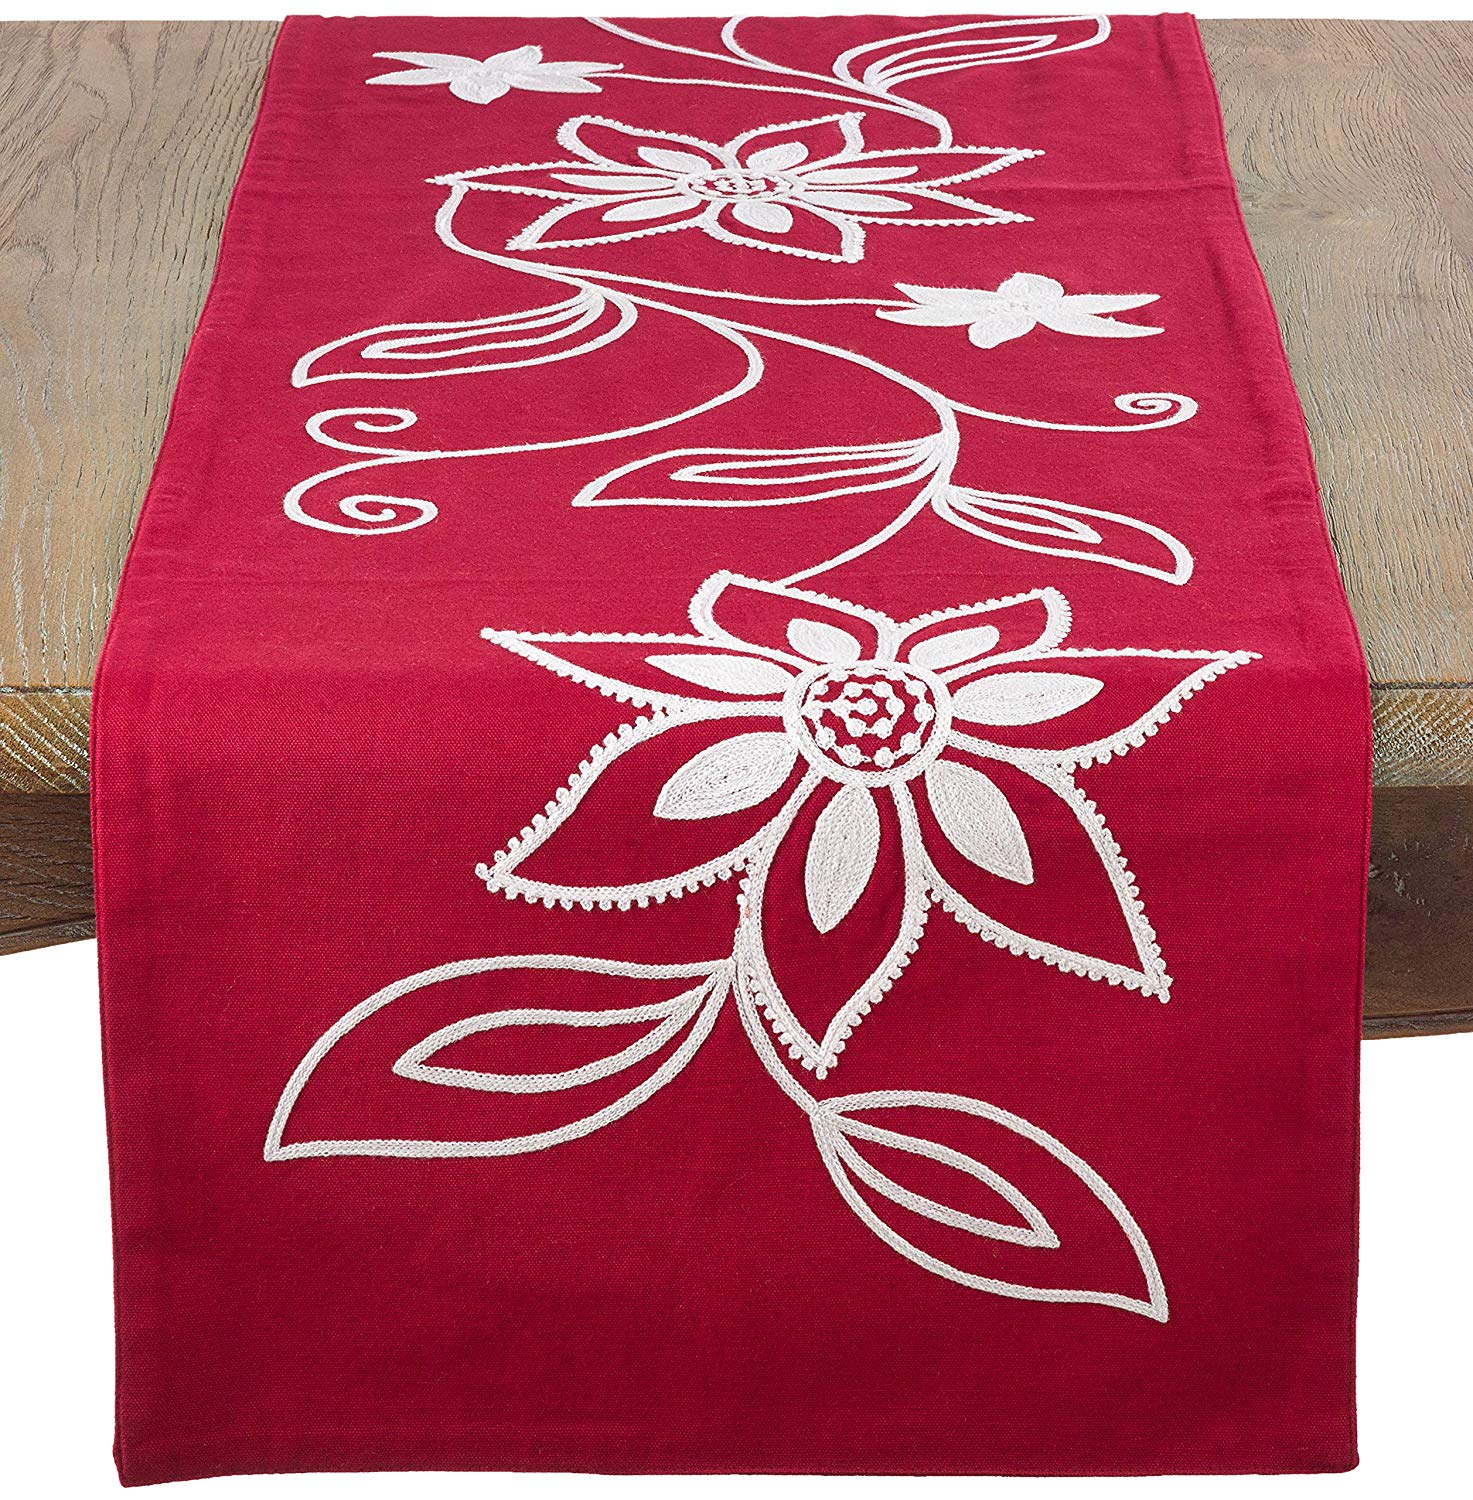 saro flower design holiday poinsettia table runner red cxrykpxl accent your focus home kitchen uma coffee narrow oak console battery powered floor lights green marble top patio